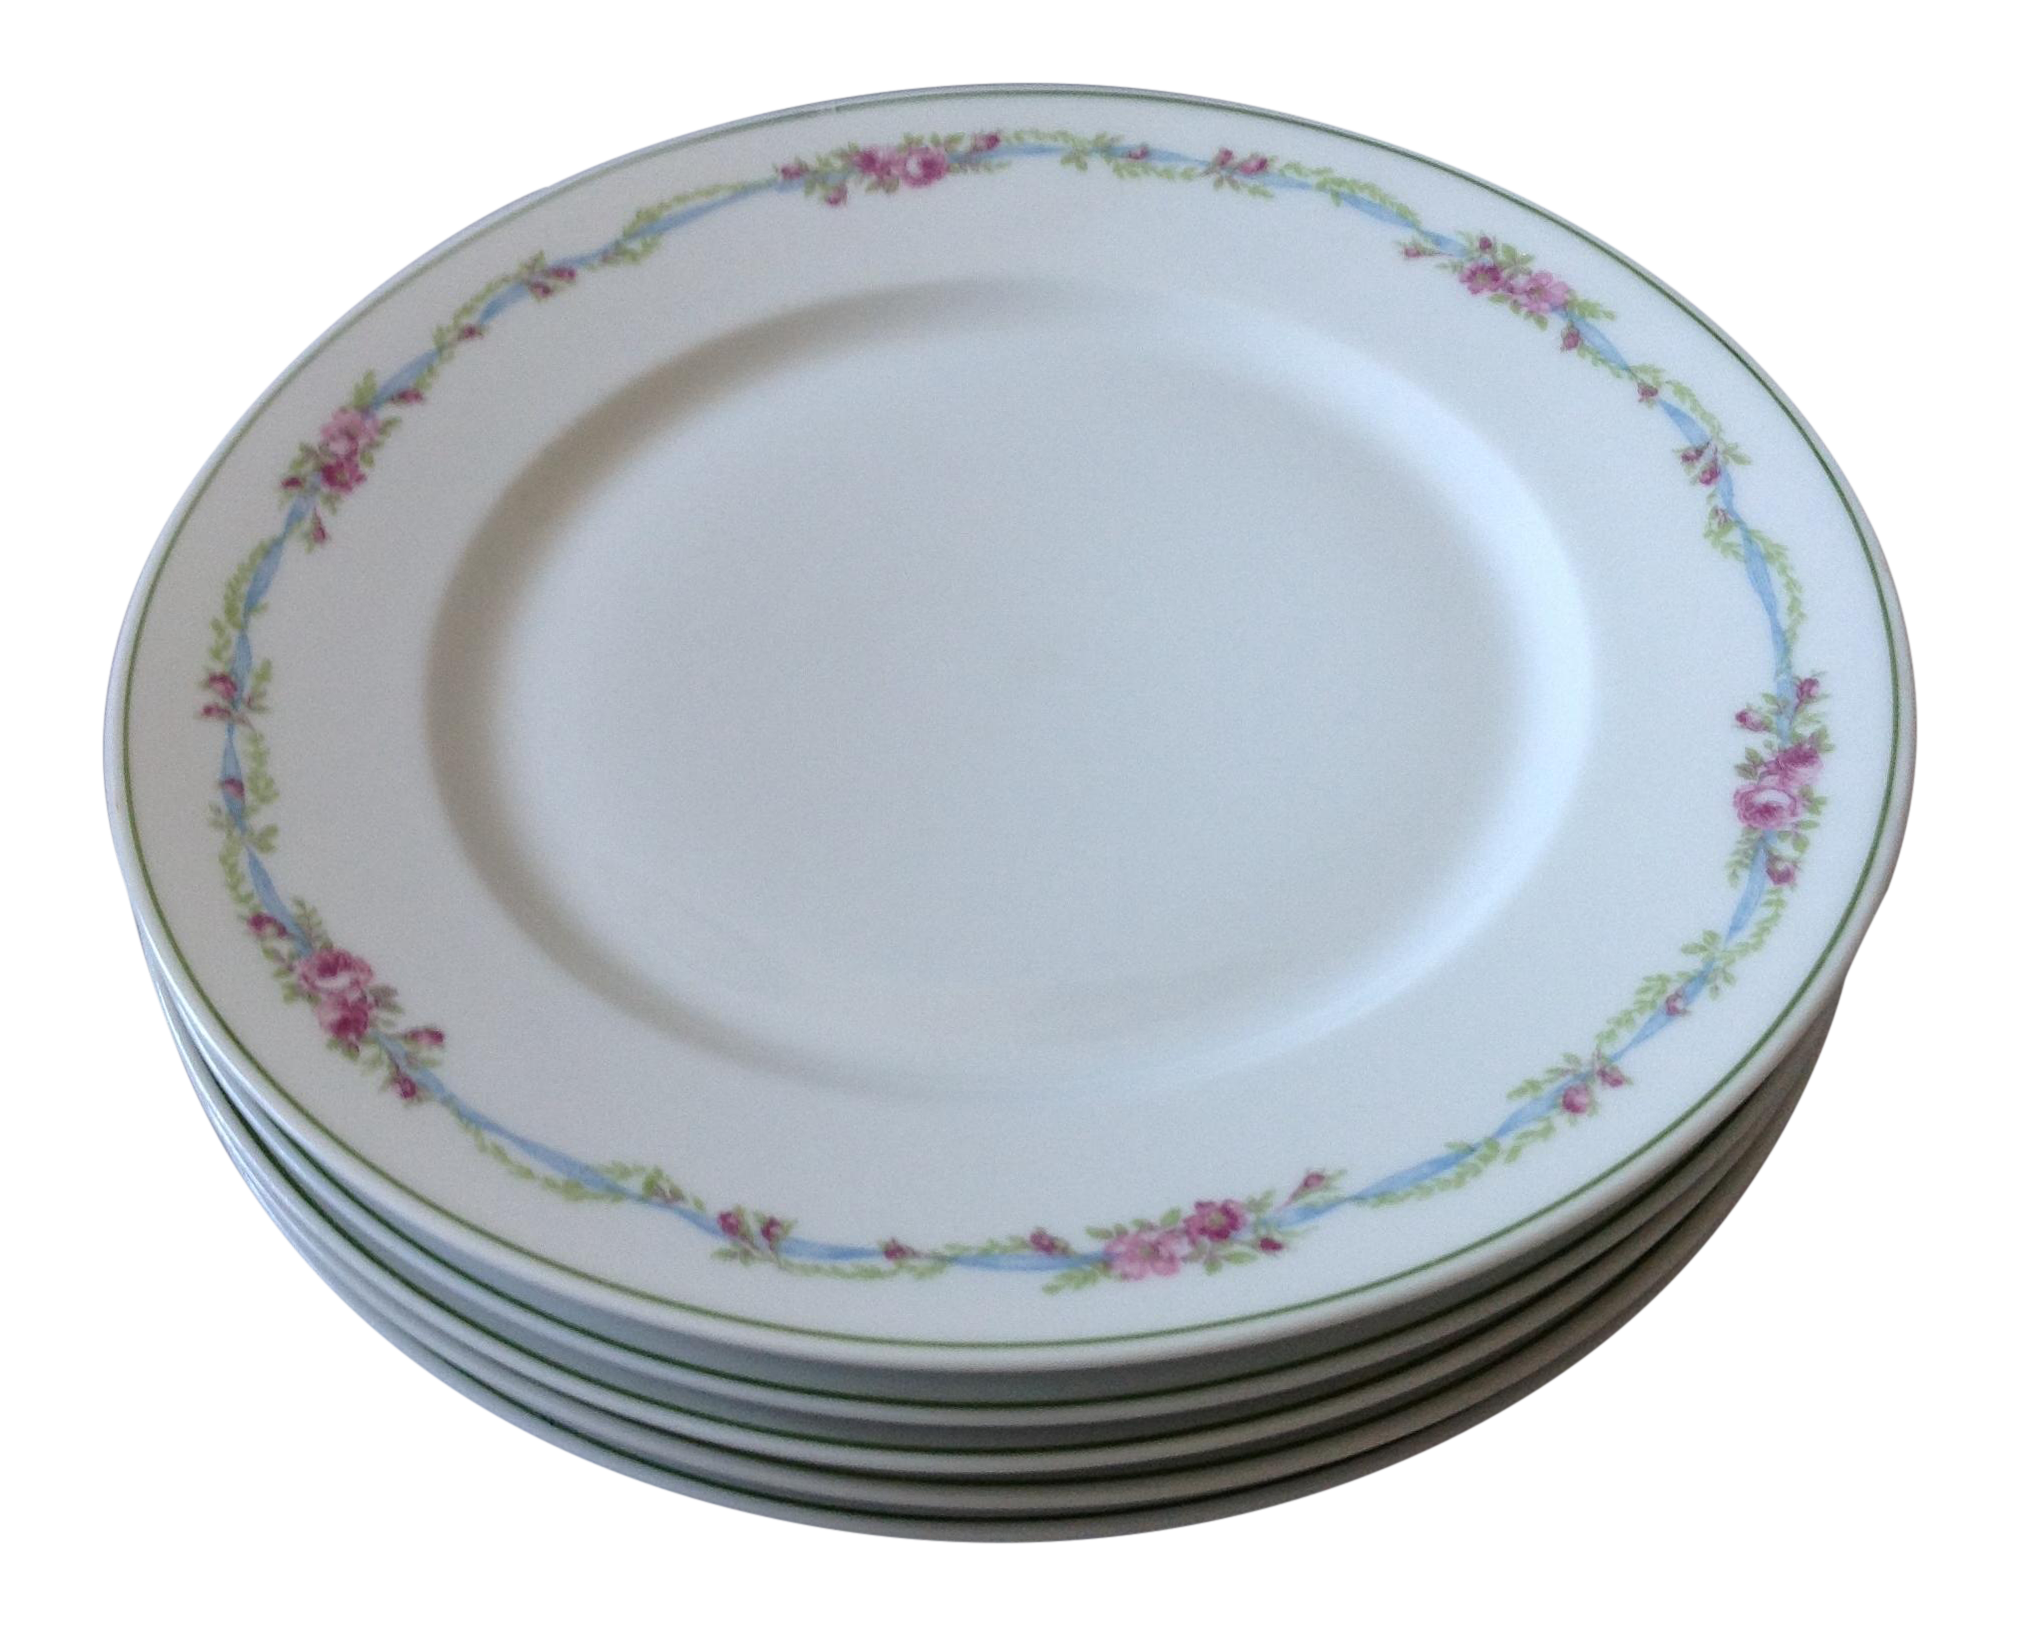 French Limoges Porcelain Plates - Set of 5 - Image 1 of 8  sc 1 st  Chairish & French Limoges Porcelain Plates - Set of 5 | Chairish